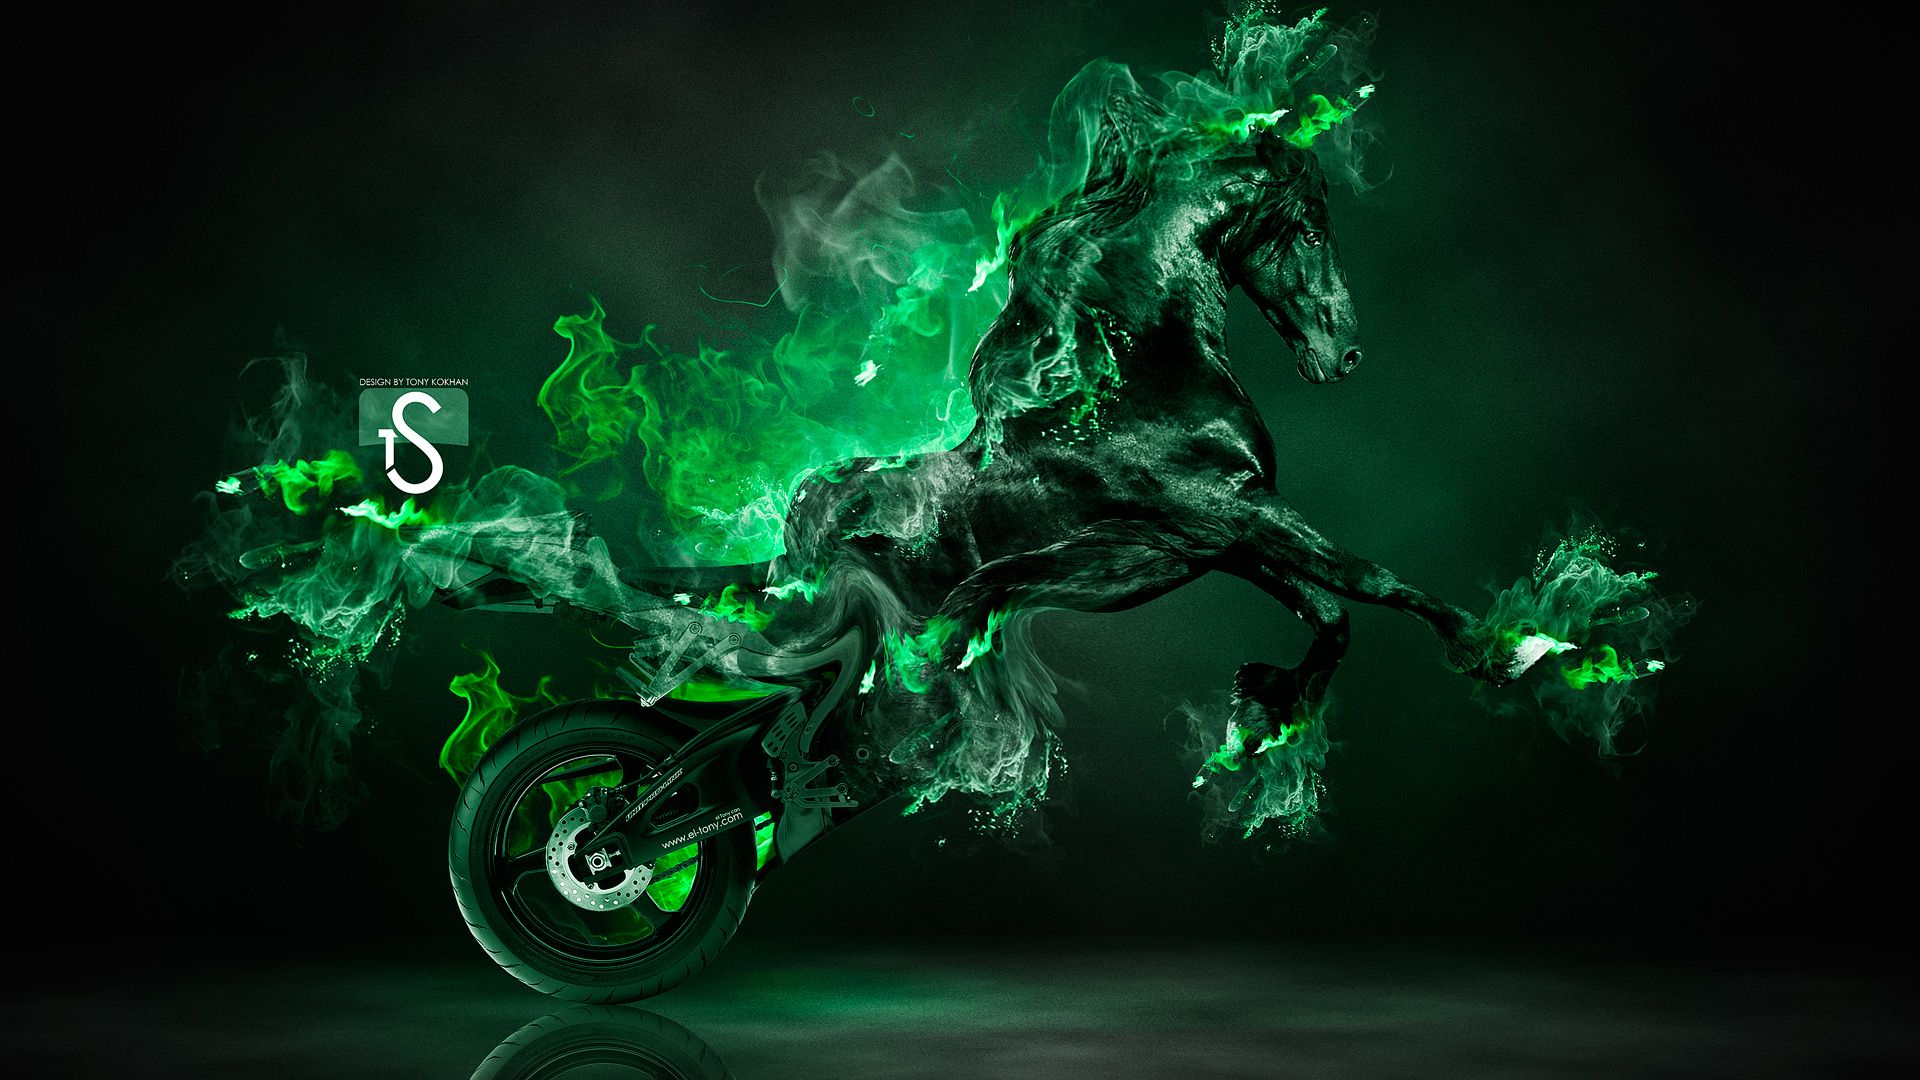 Pin By Candice Chisholm On Smoke Powder Fire Horse Horse Wallpaper Fantasy Horses